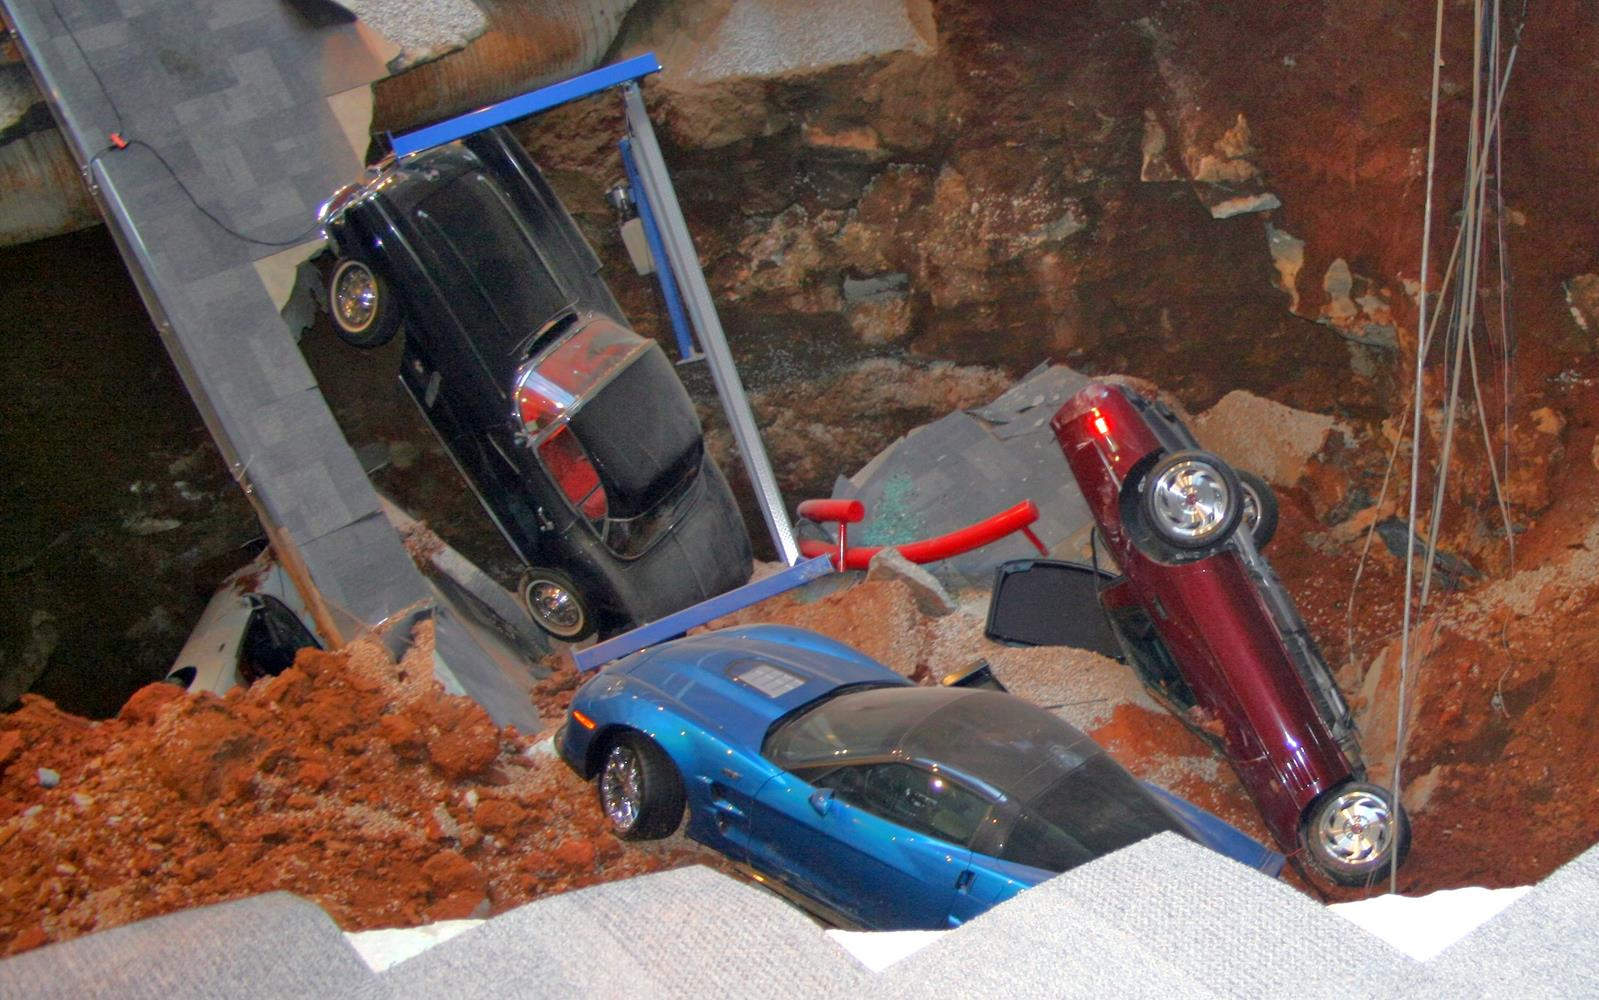 National Corvette Museum >> Sinkhole Collapses at National Corvette Museum, eight Corvettes were affected - myAutoWorld.com